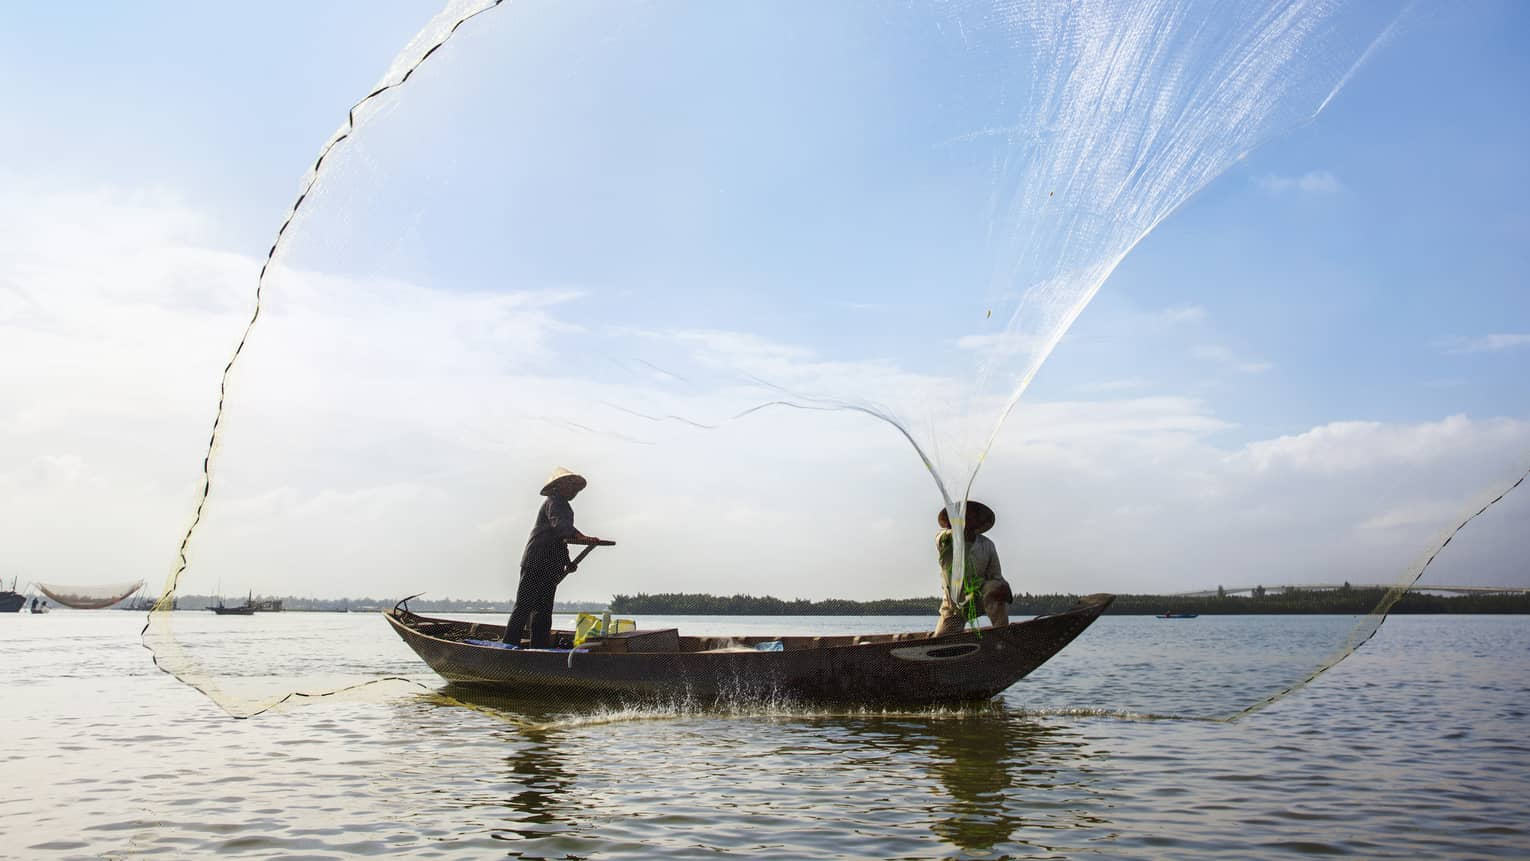 Silhouettes of two people wearing hats in small boat standing, casting large nets